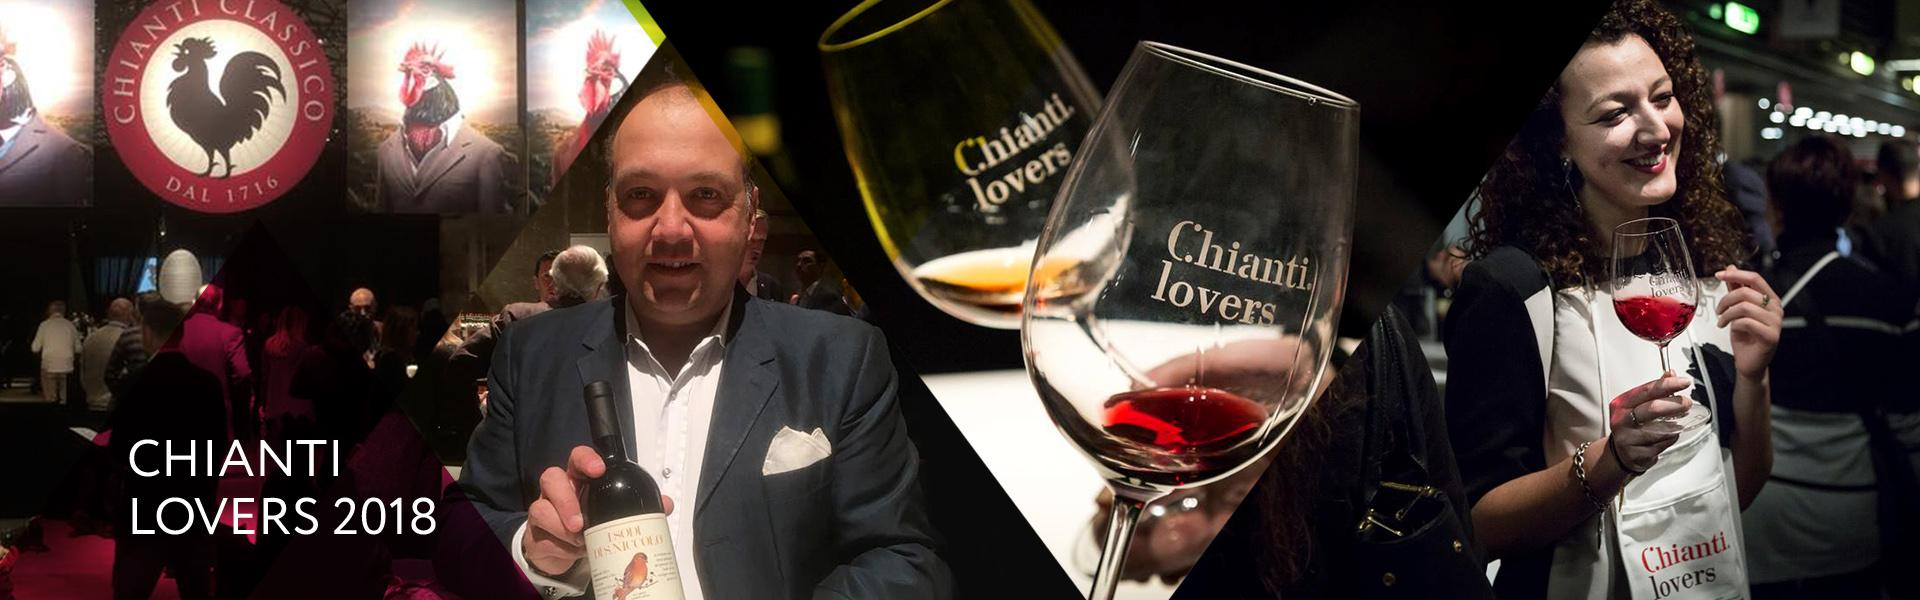 Chianti Lovers